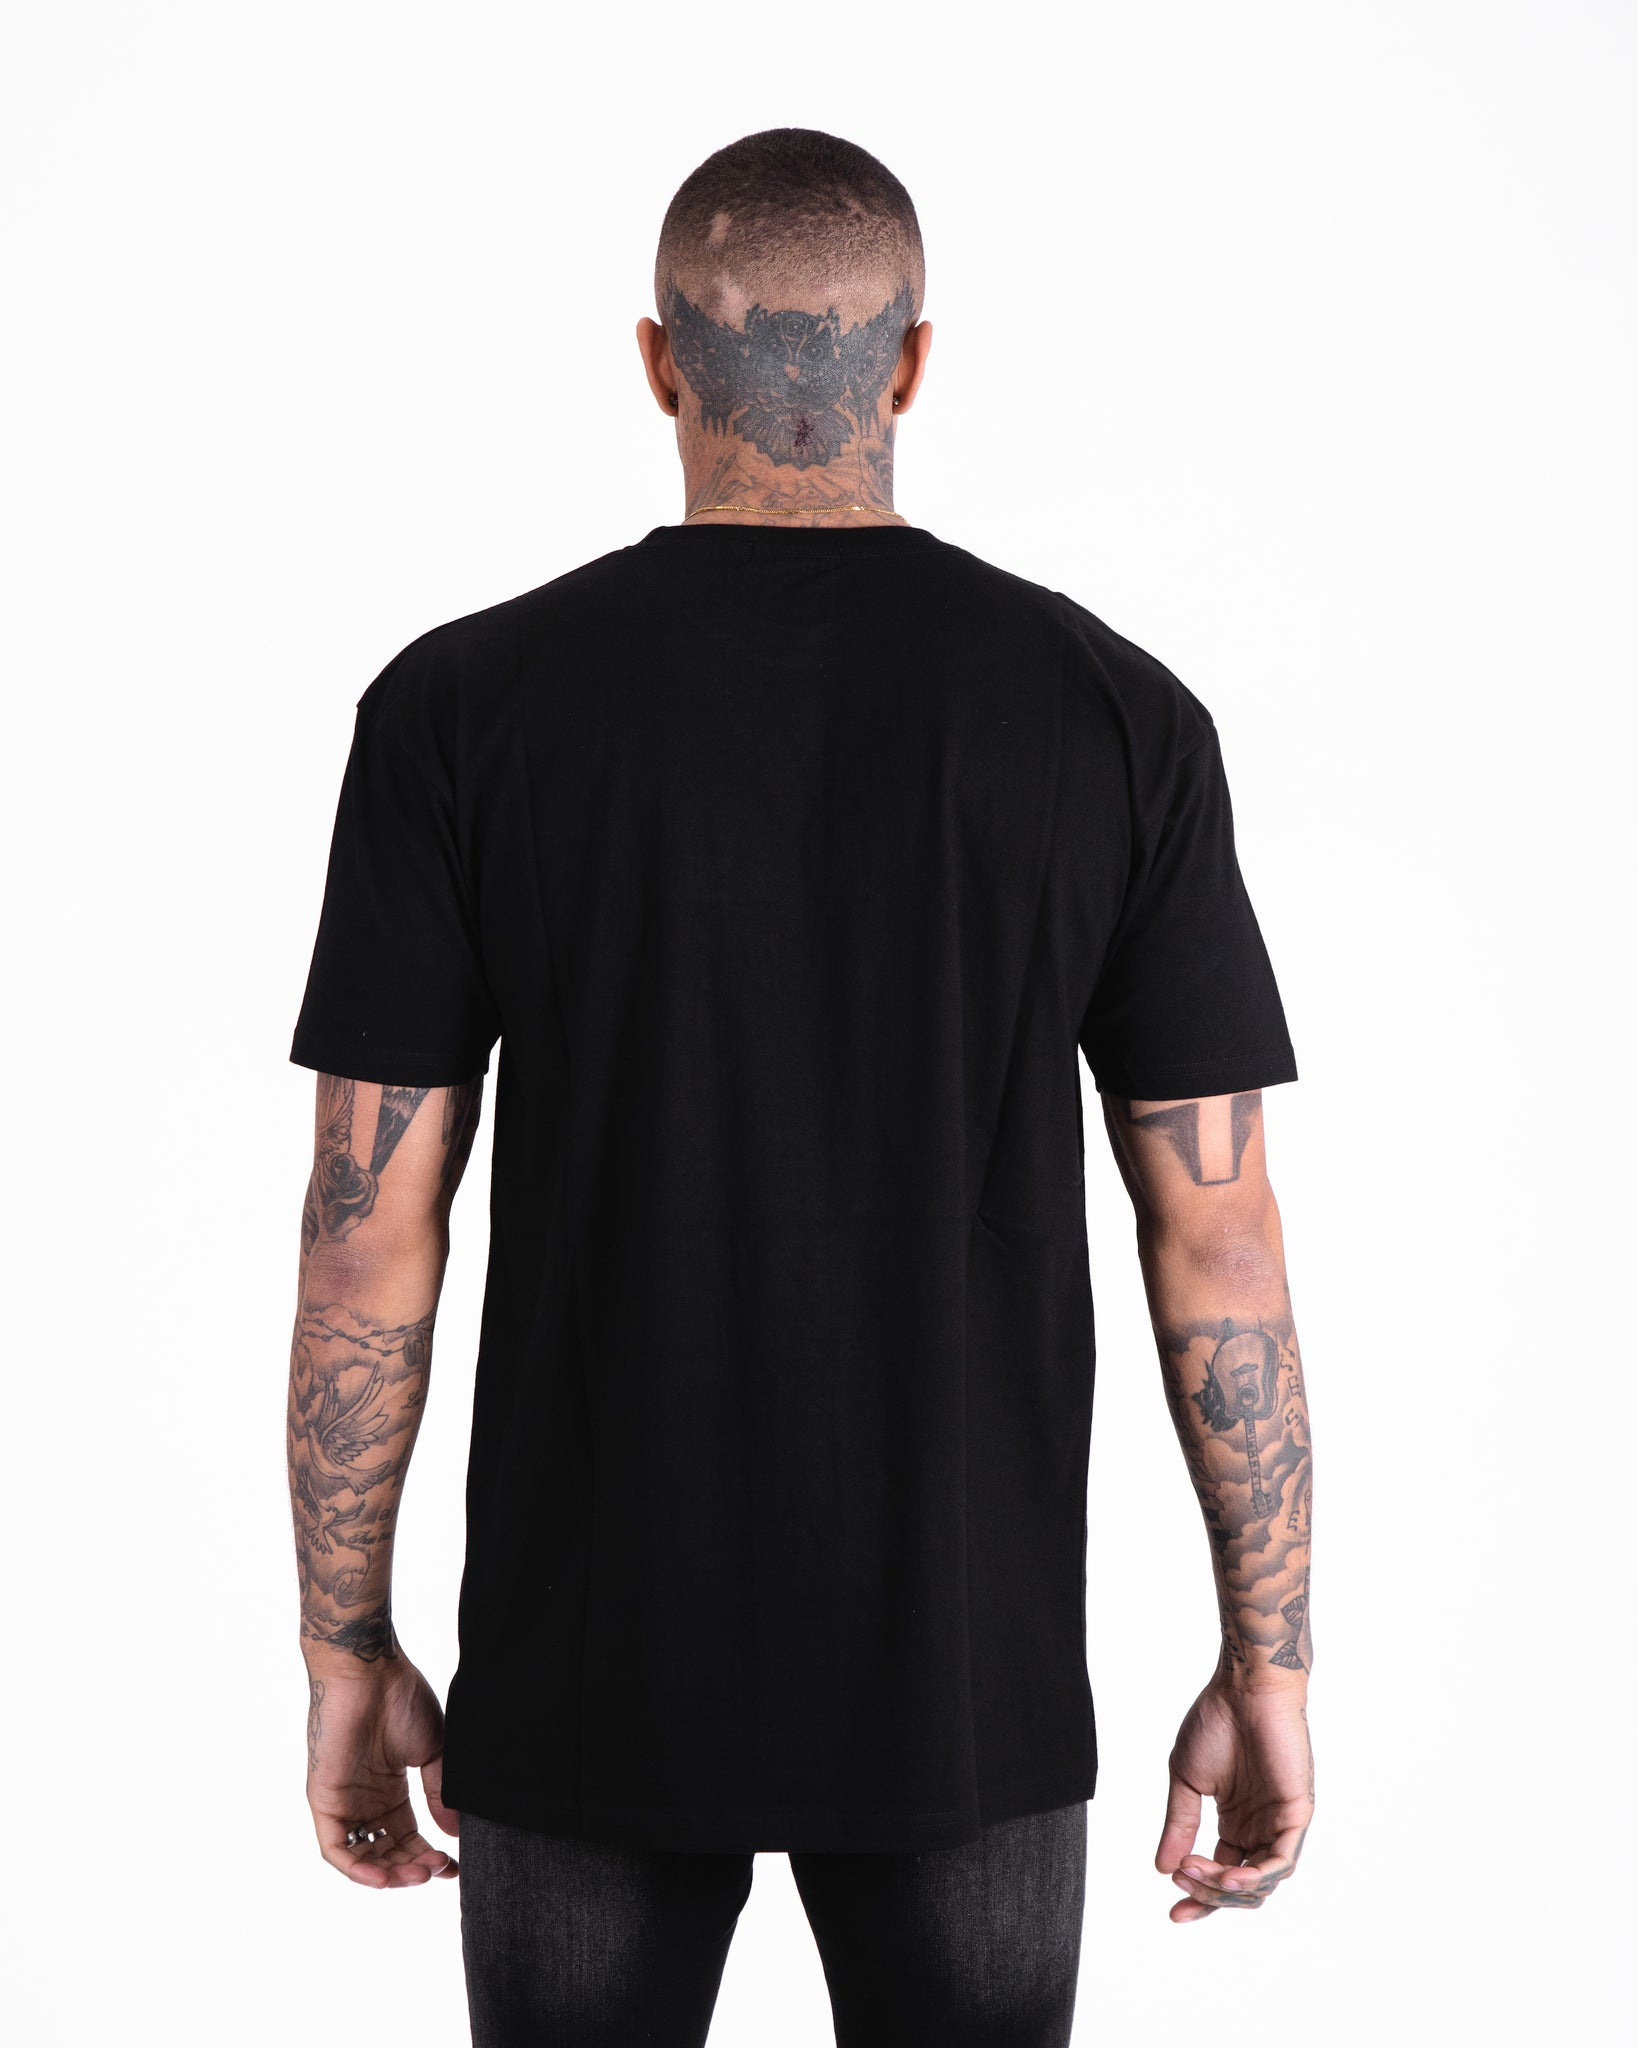 OVERSIZED BLACK HIDDEN 'ILLUSION' TEE - Illusion Attire